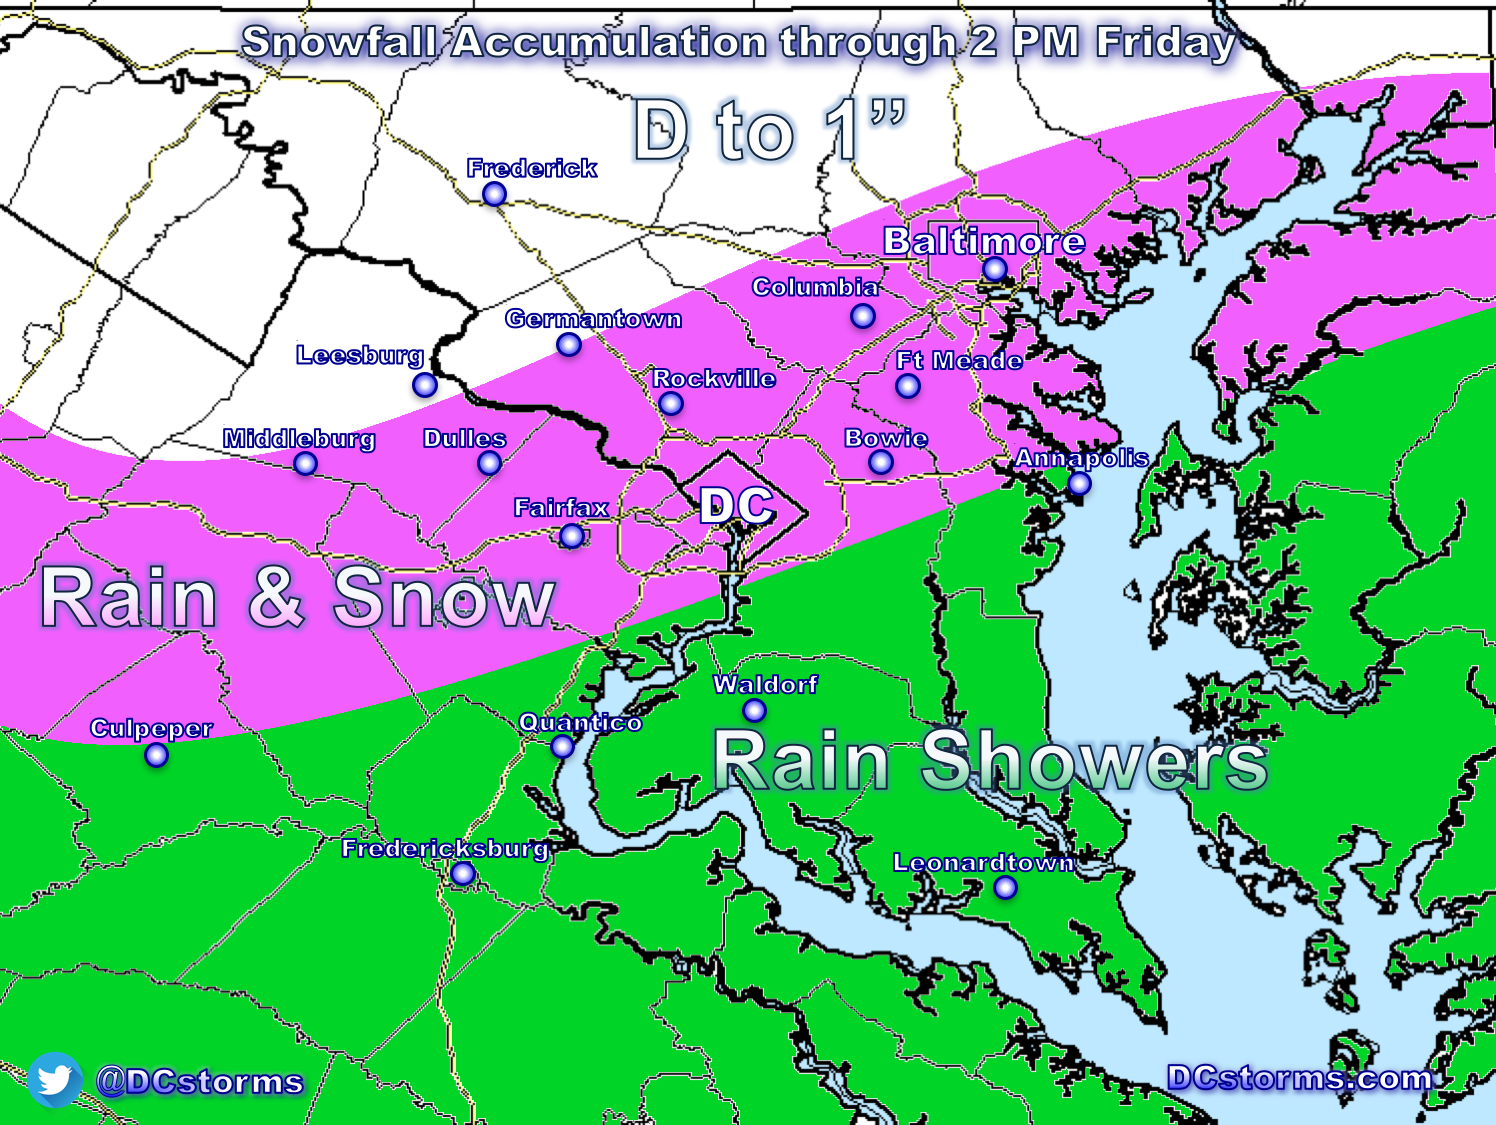 Snow Accumulation Map DC Area Snowfall Accumulation Map Posted for Friday March 10th  Snow Accumulation Map